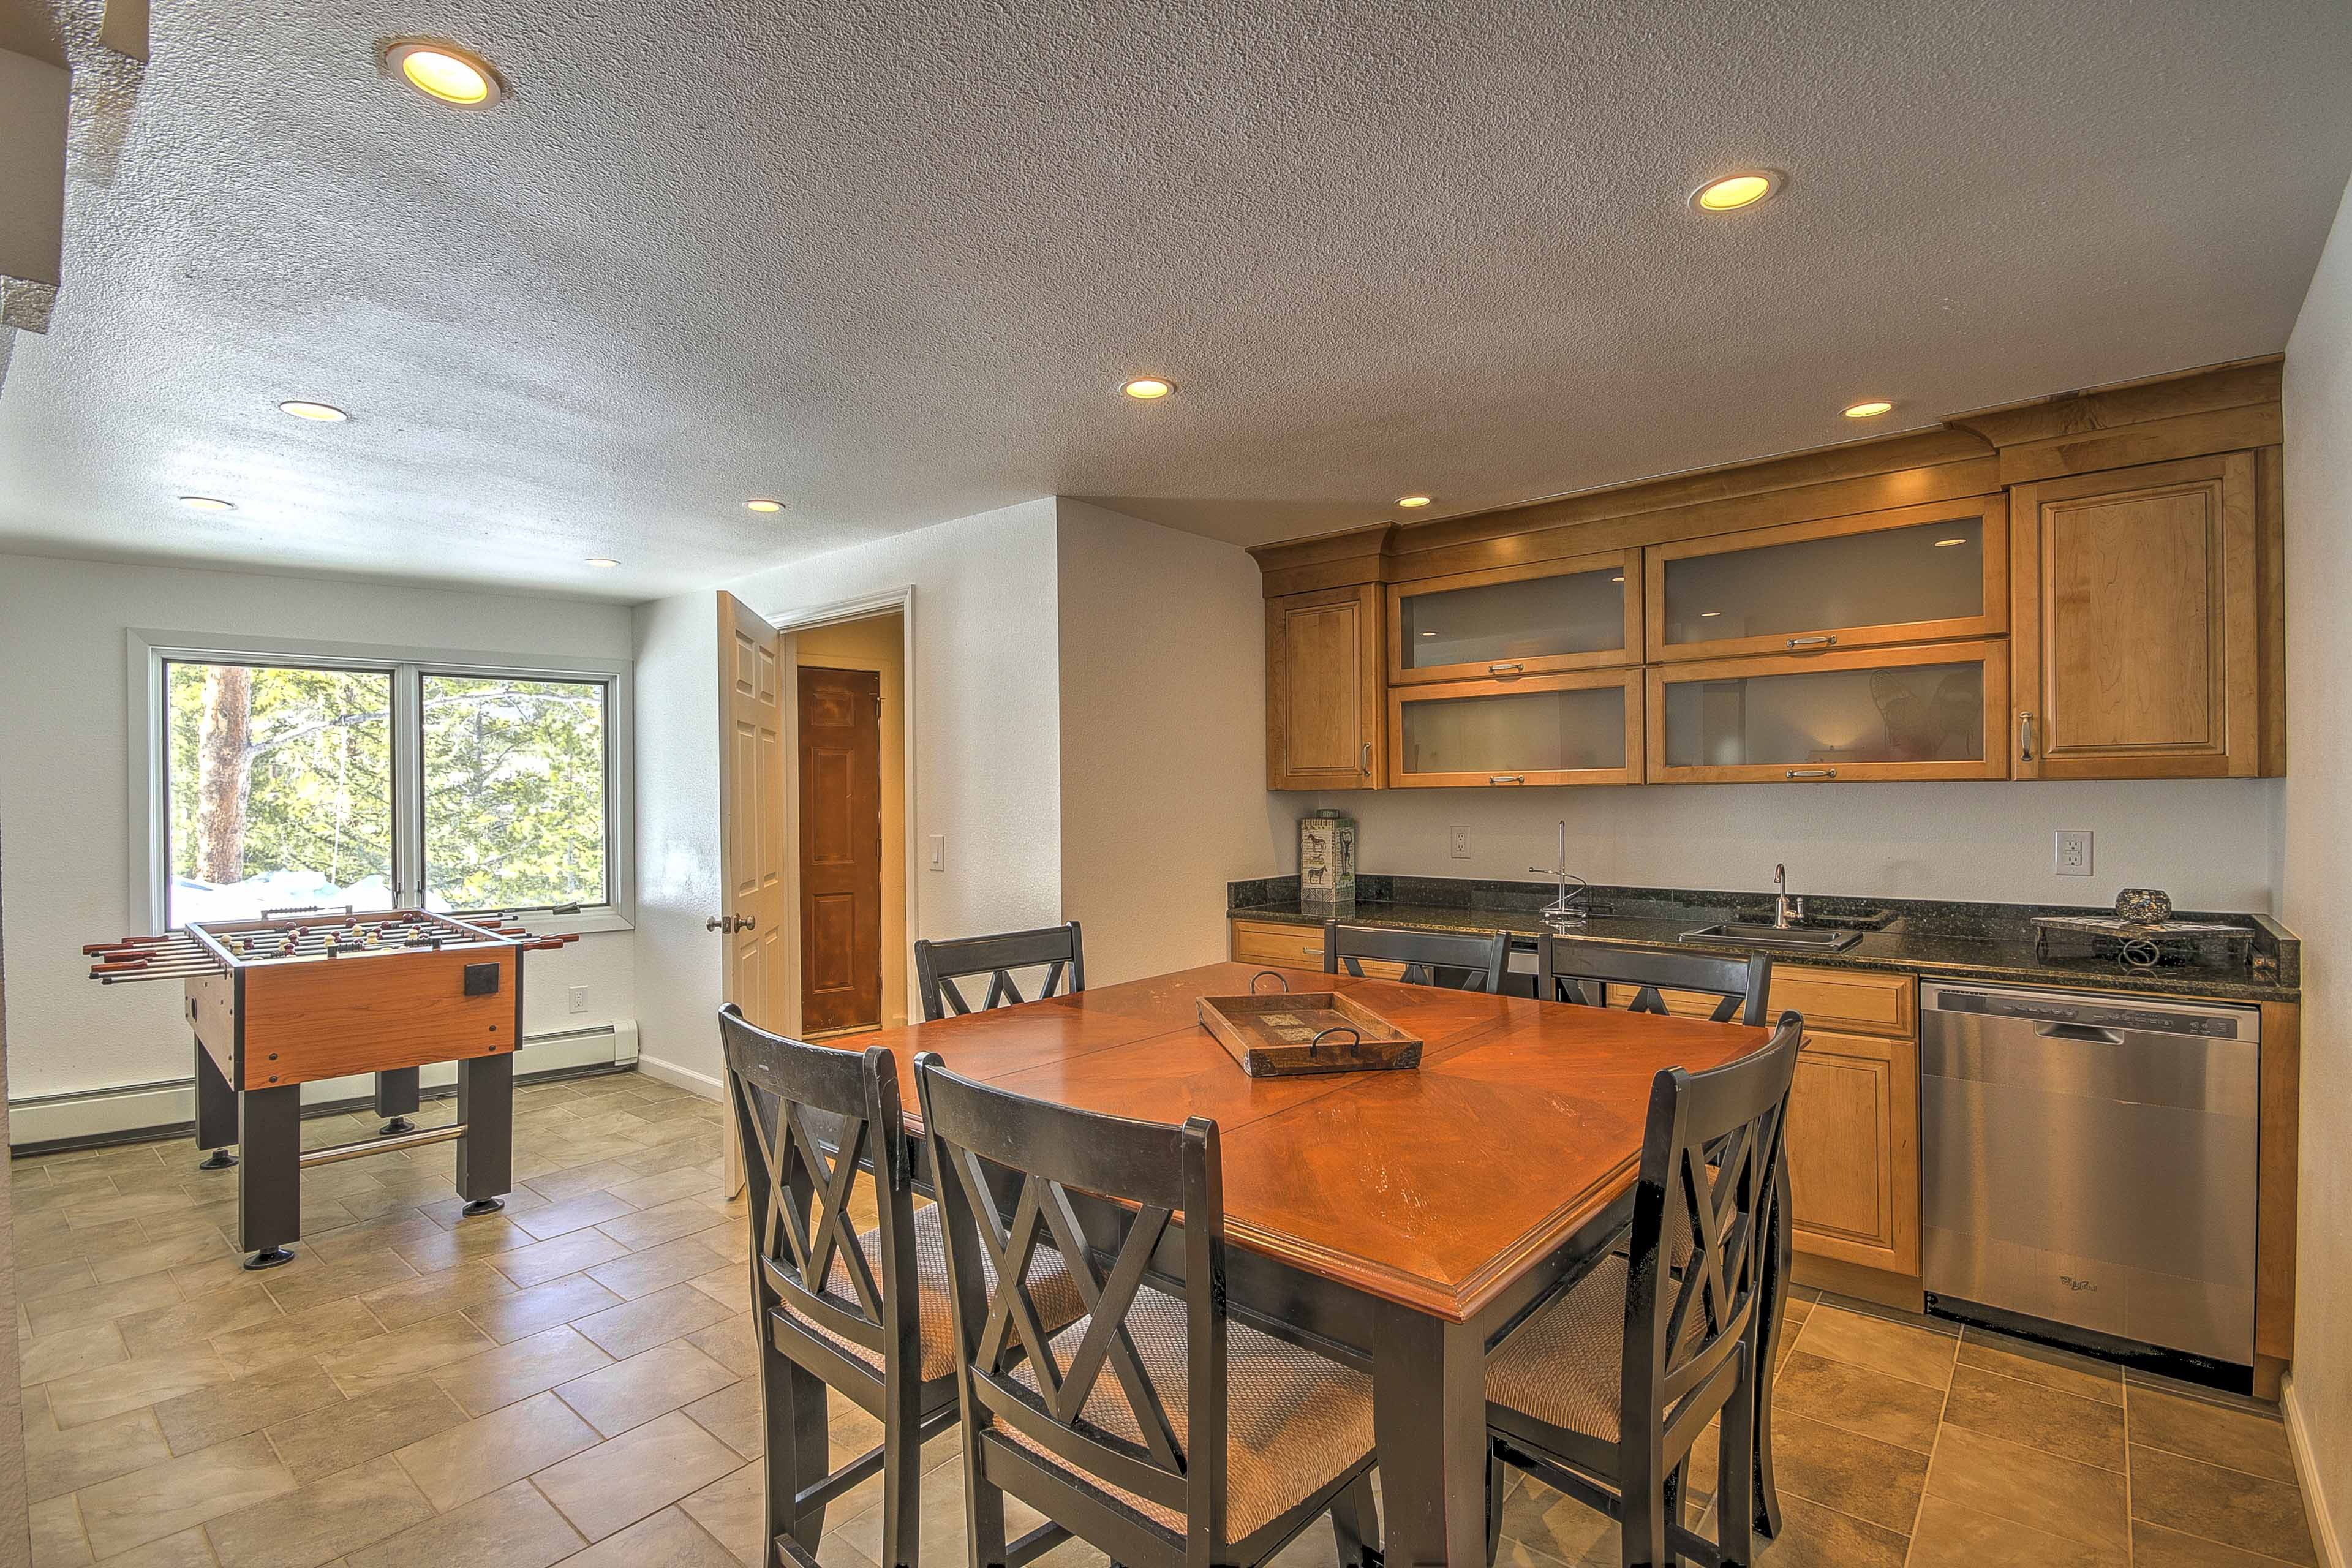 The second living area even features a kitchenette and even a foosball table!